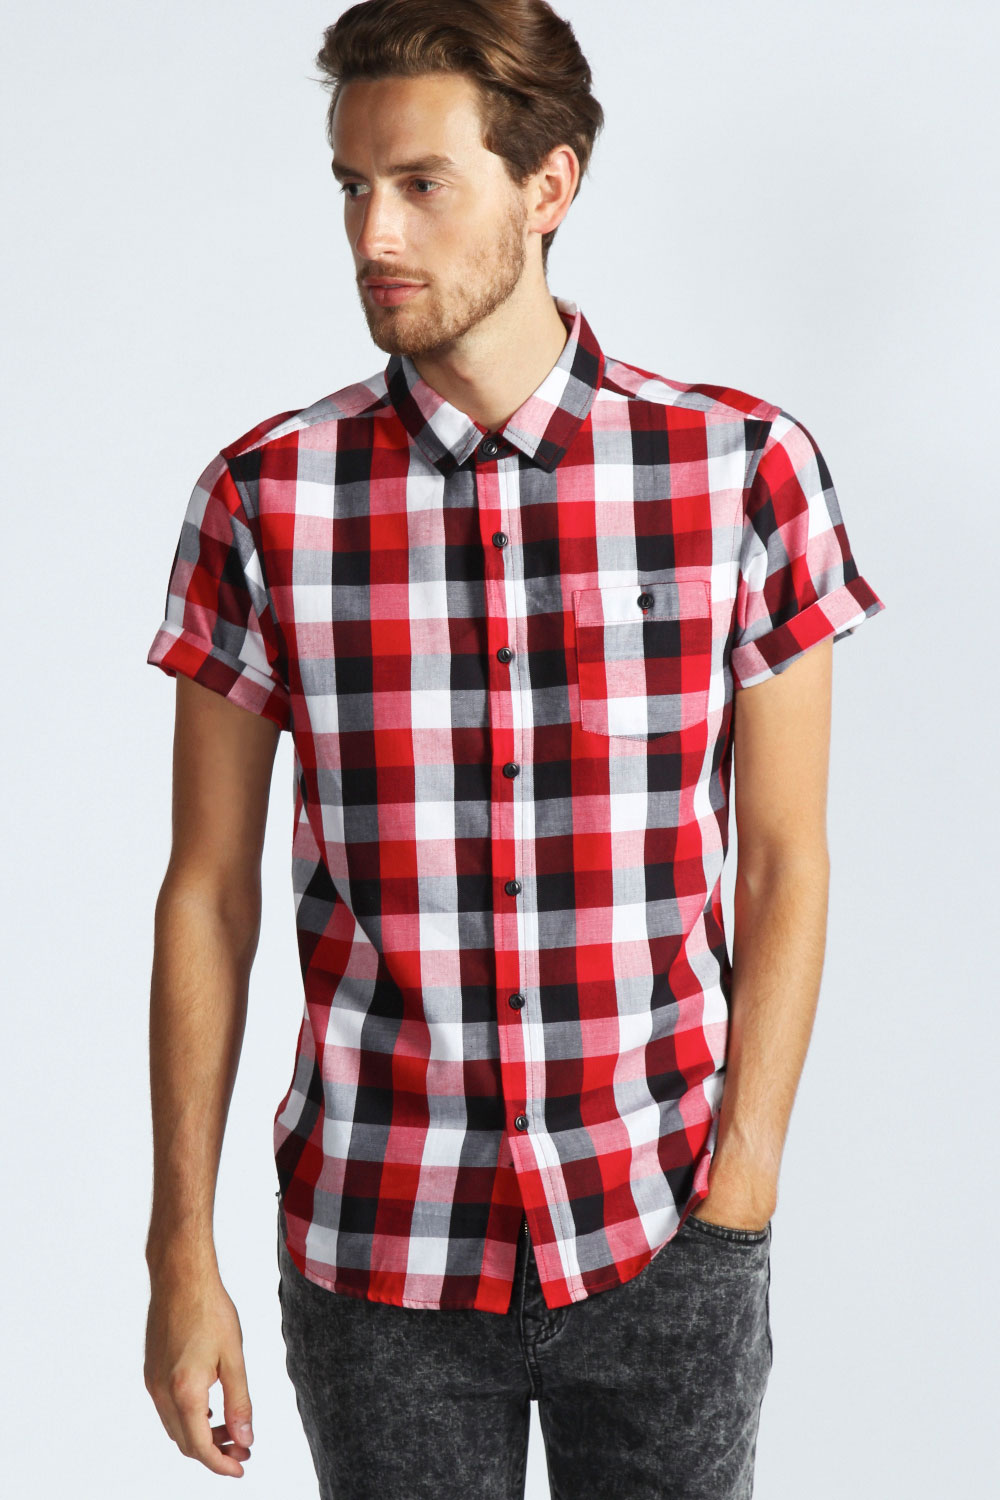 Boohoo-Mens-Short-Sleeve-Buffalo-Check-Top-Shirt-In-Red